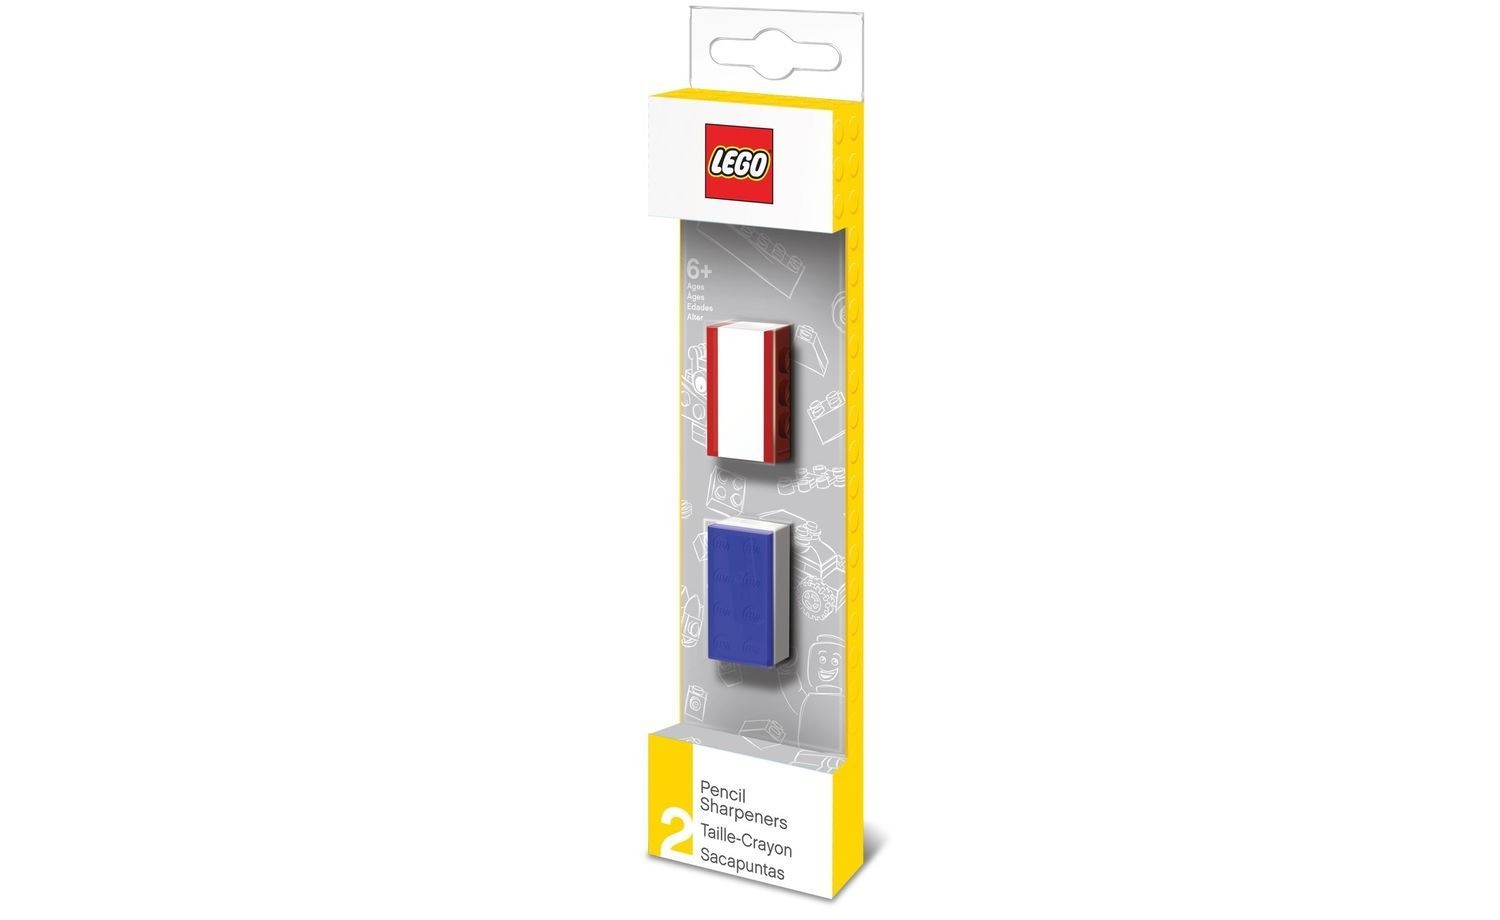 Lego Stationery - Pencil Sharpeners (2pcs)